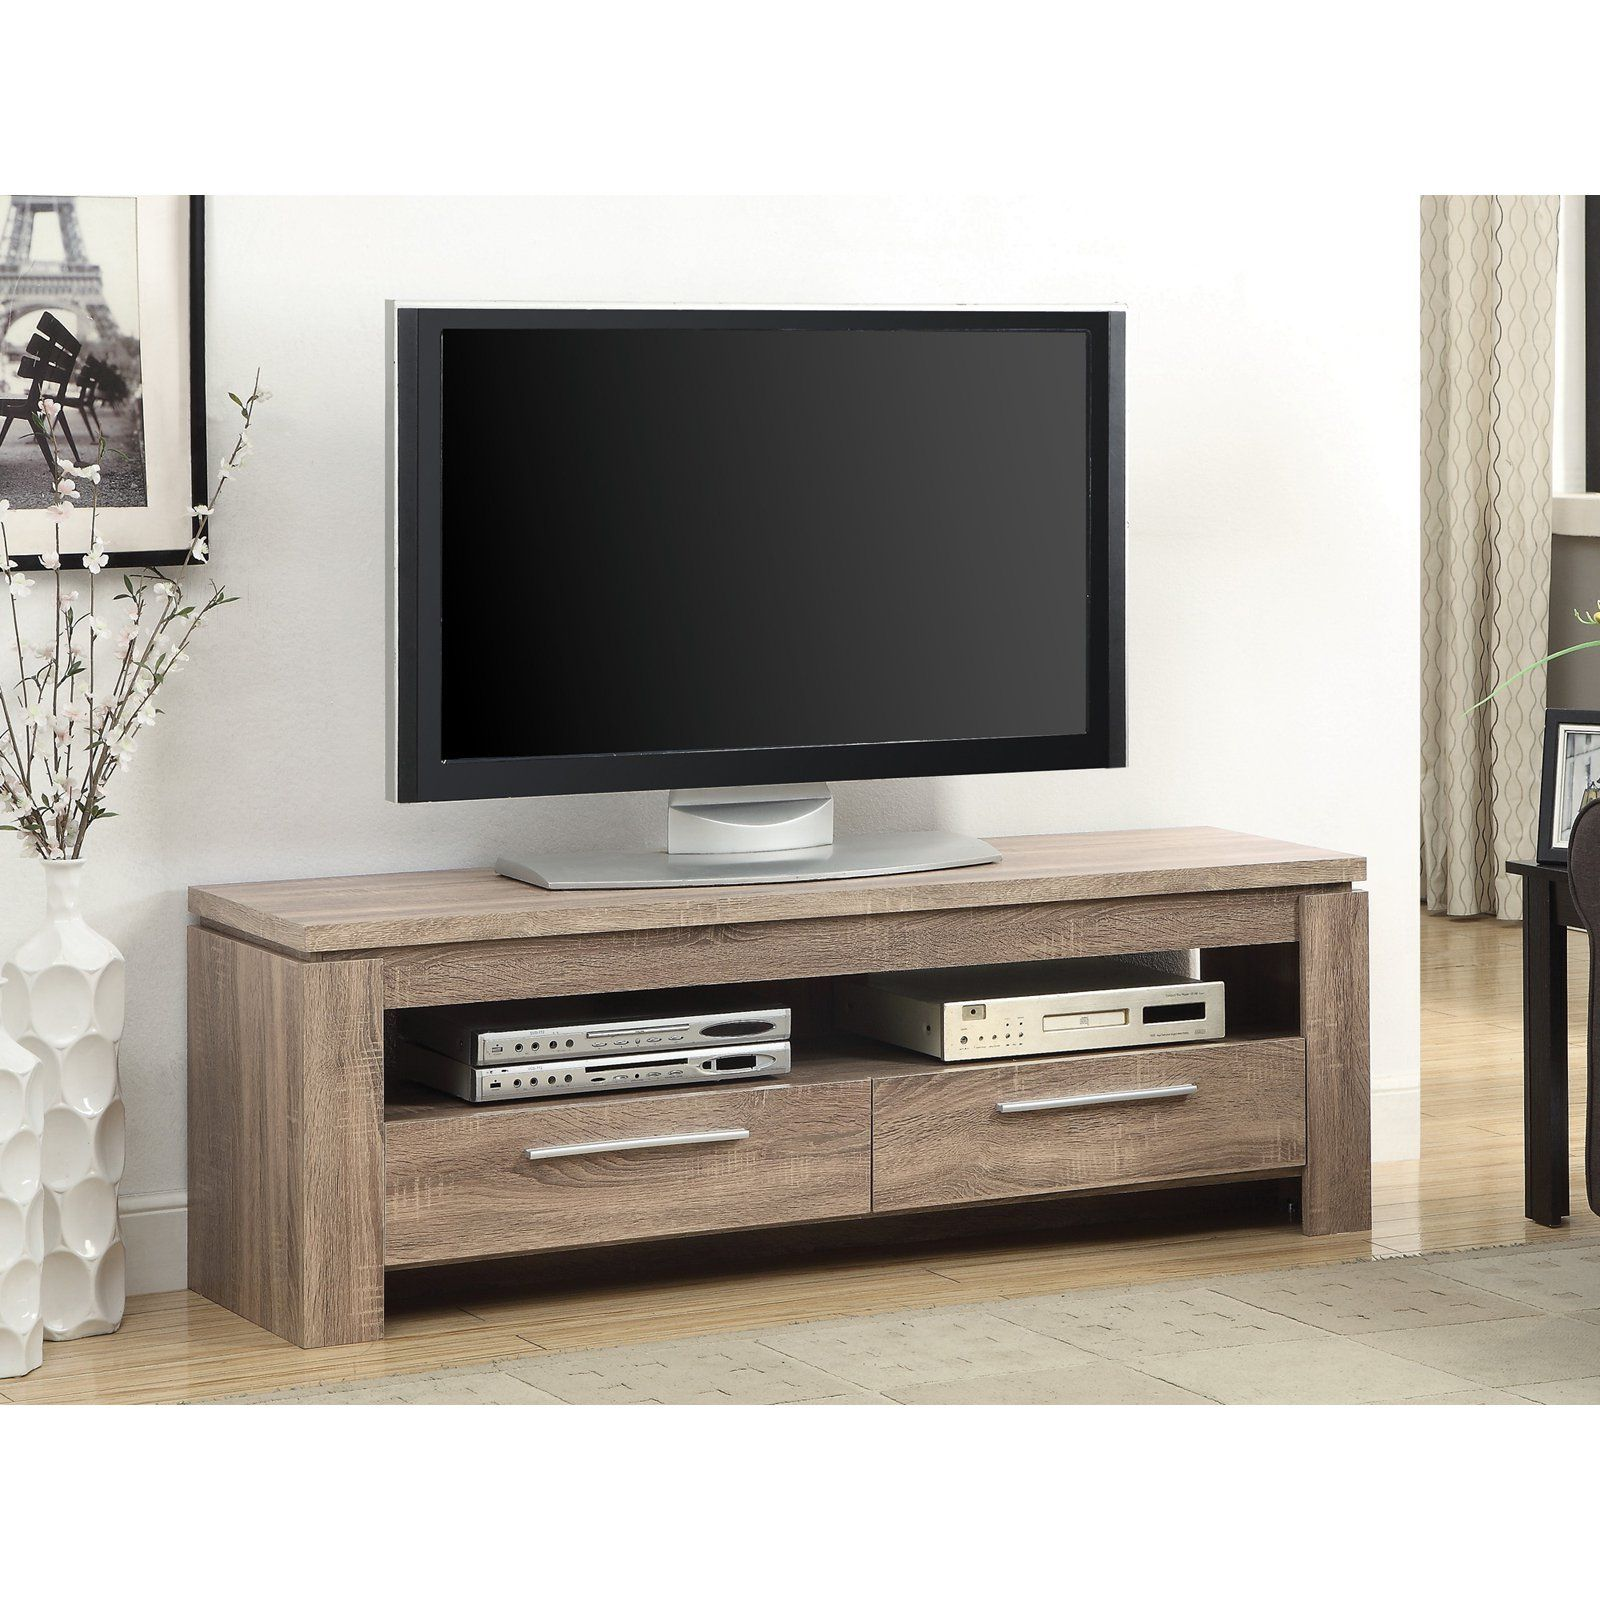 Coaster Furniture Low Profile Media Console With 2 Drawers Tv Stand Wood Solid Wood Tv Stand Rustic Tv Console